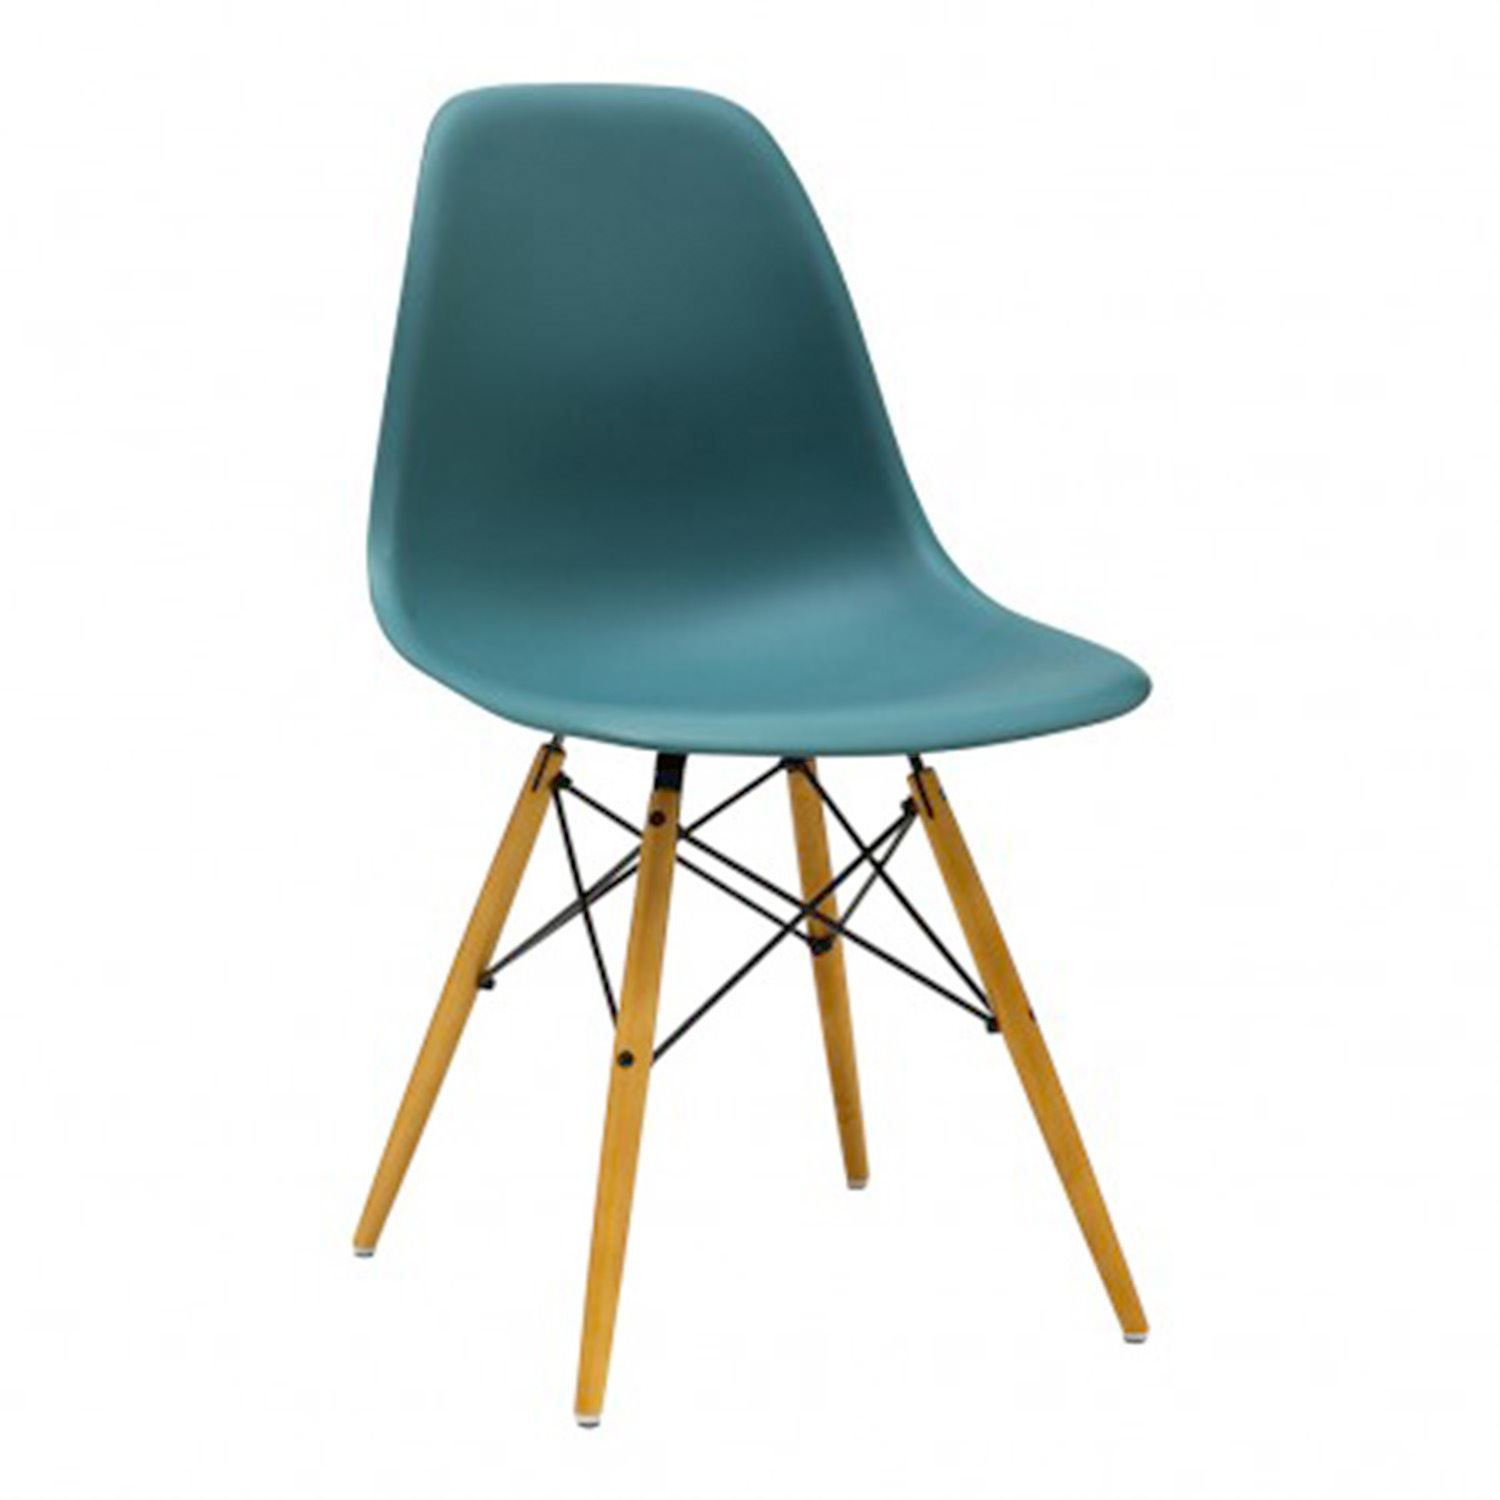 Charles Ray Eames Eiffel Inspired Dsw Dining Chair Retro